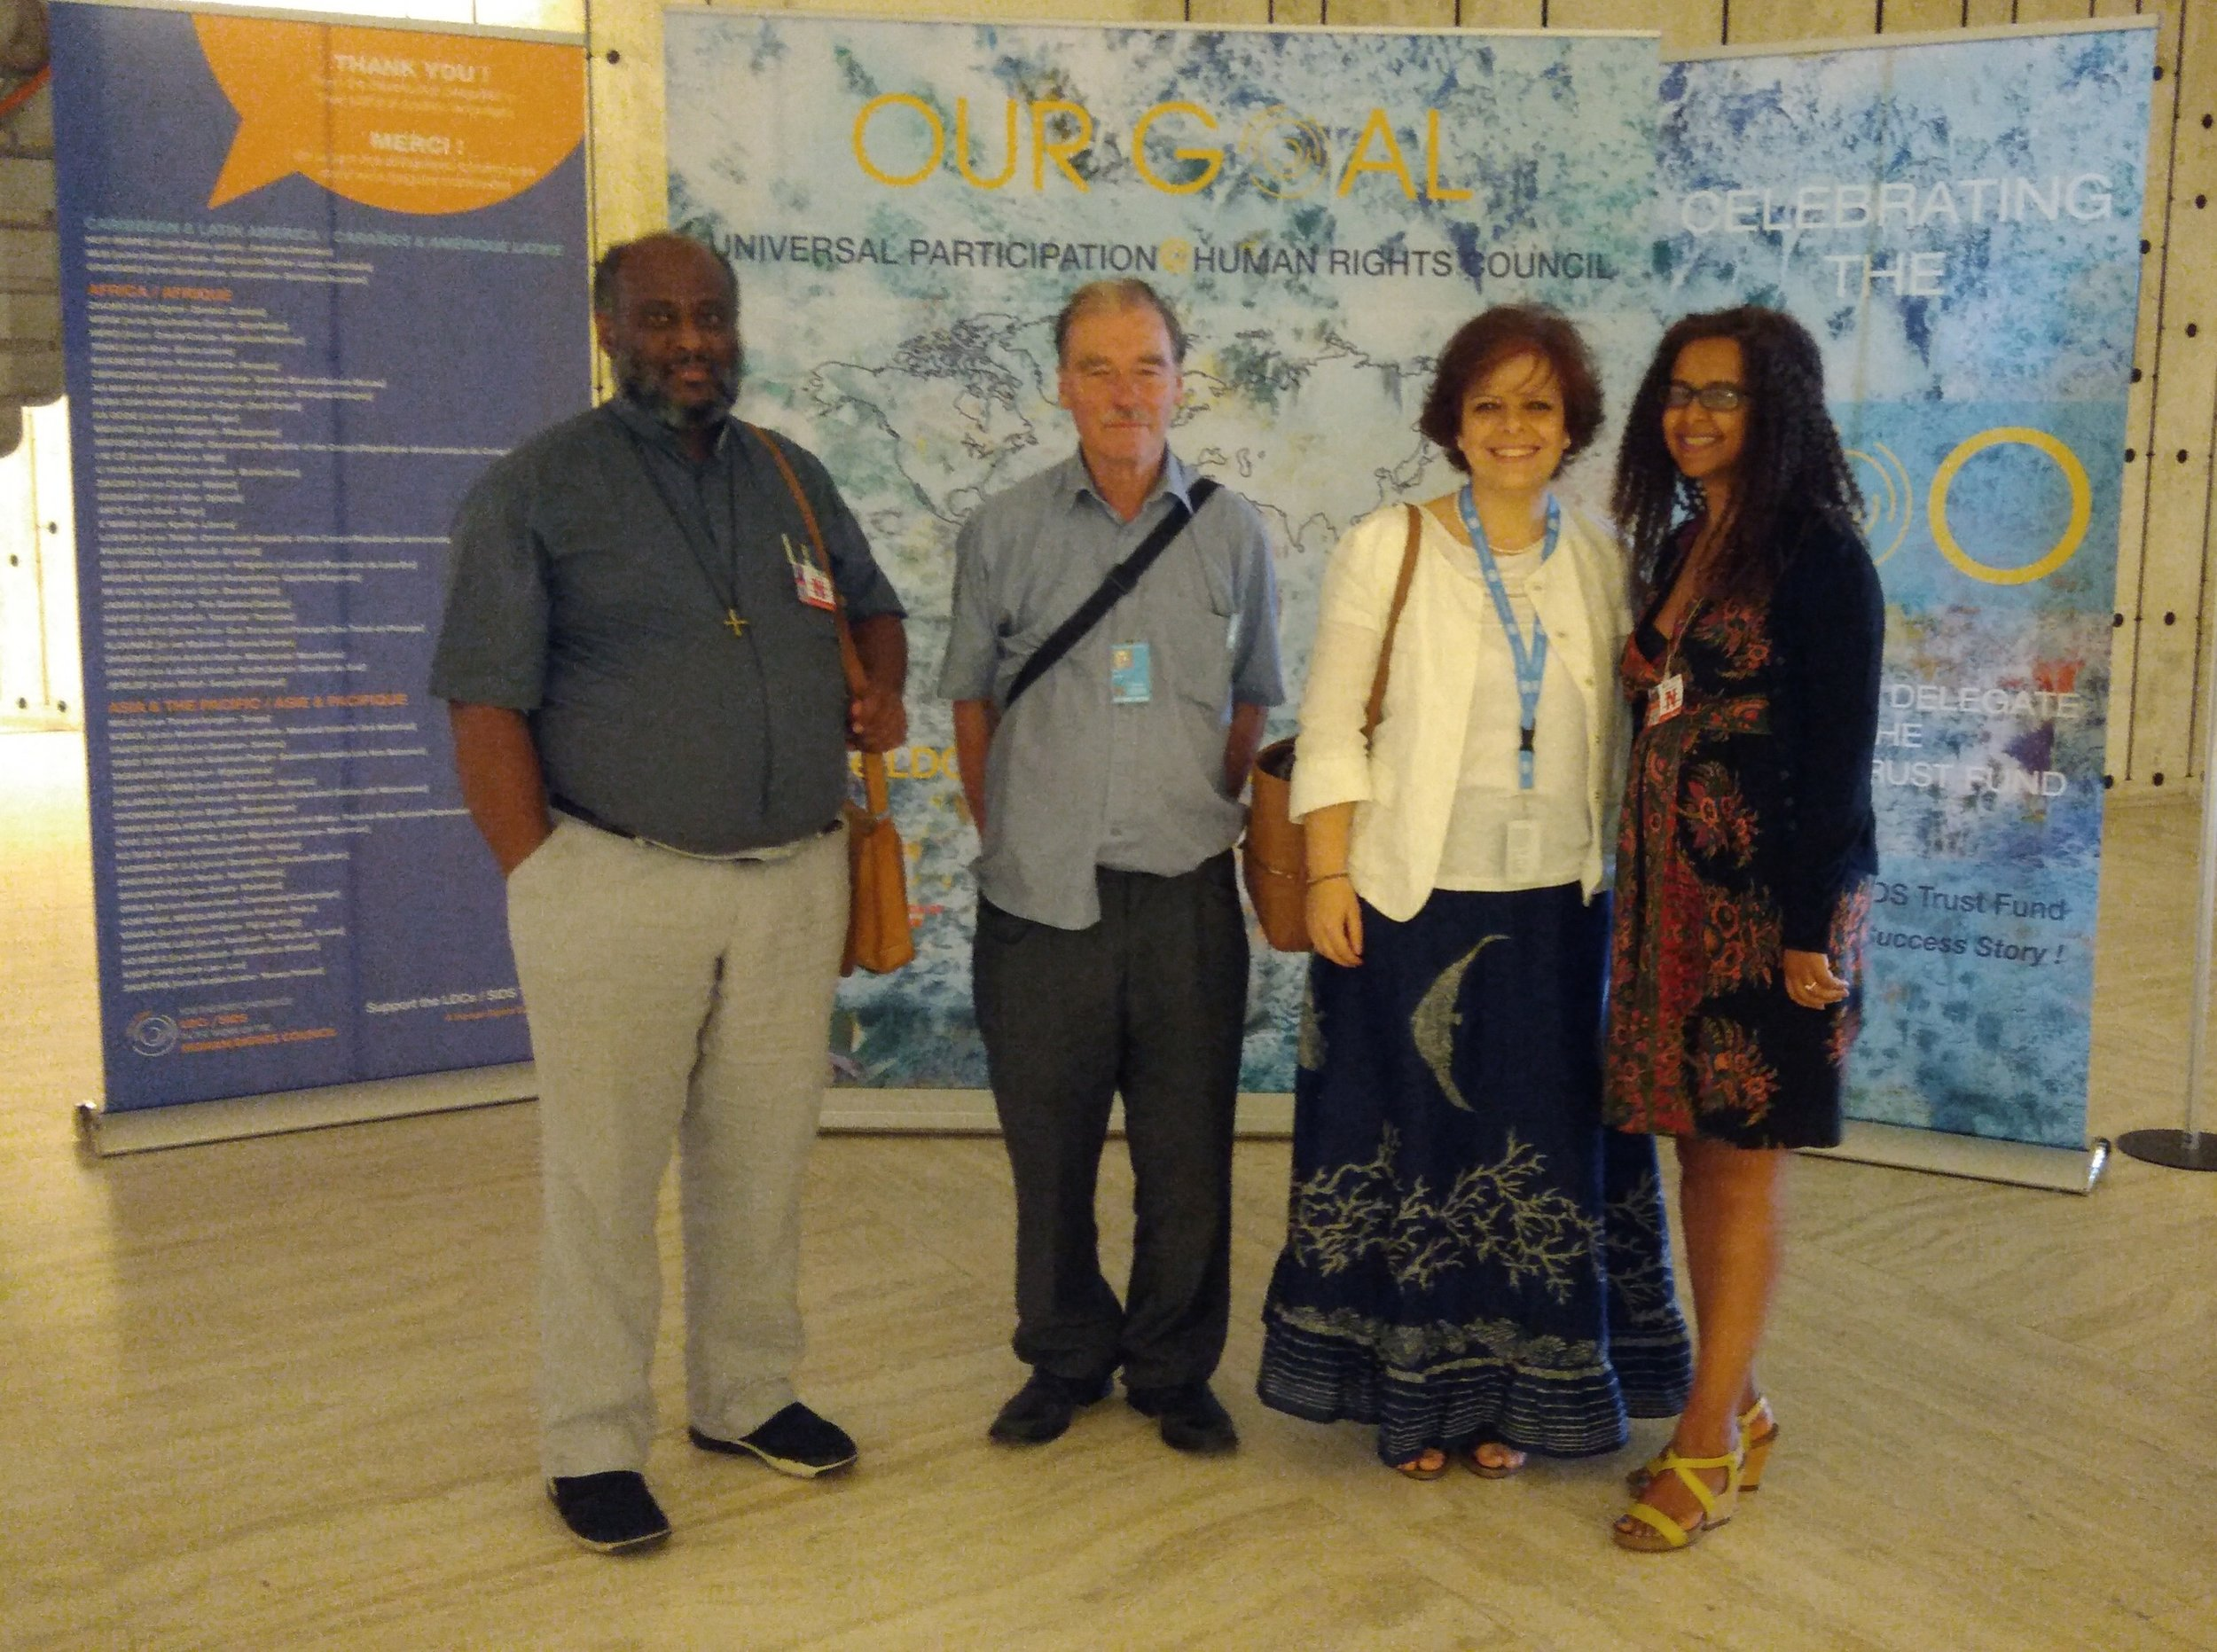 From the left Father Mussie Zerai, Derek Brett and Zaira Zafarana, the UN IFOR reps, and Selan Kidame, Eritrean-born psychotherapist and human rights activist, who was the second panellist.